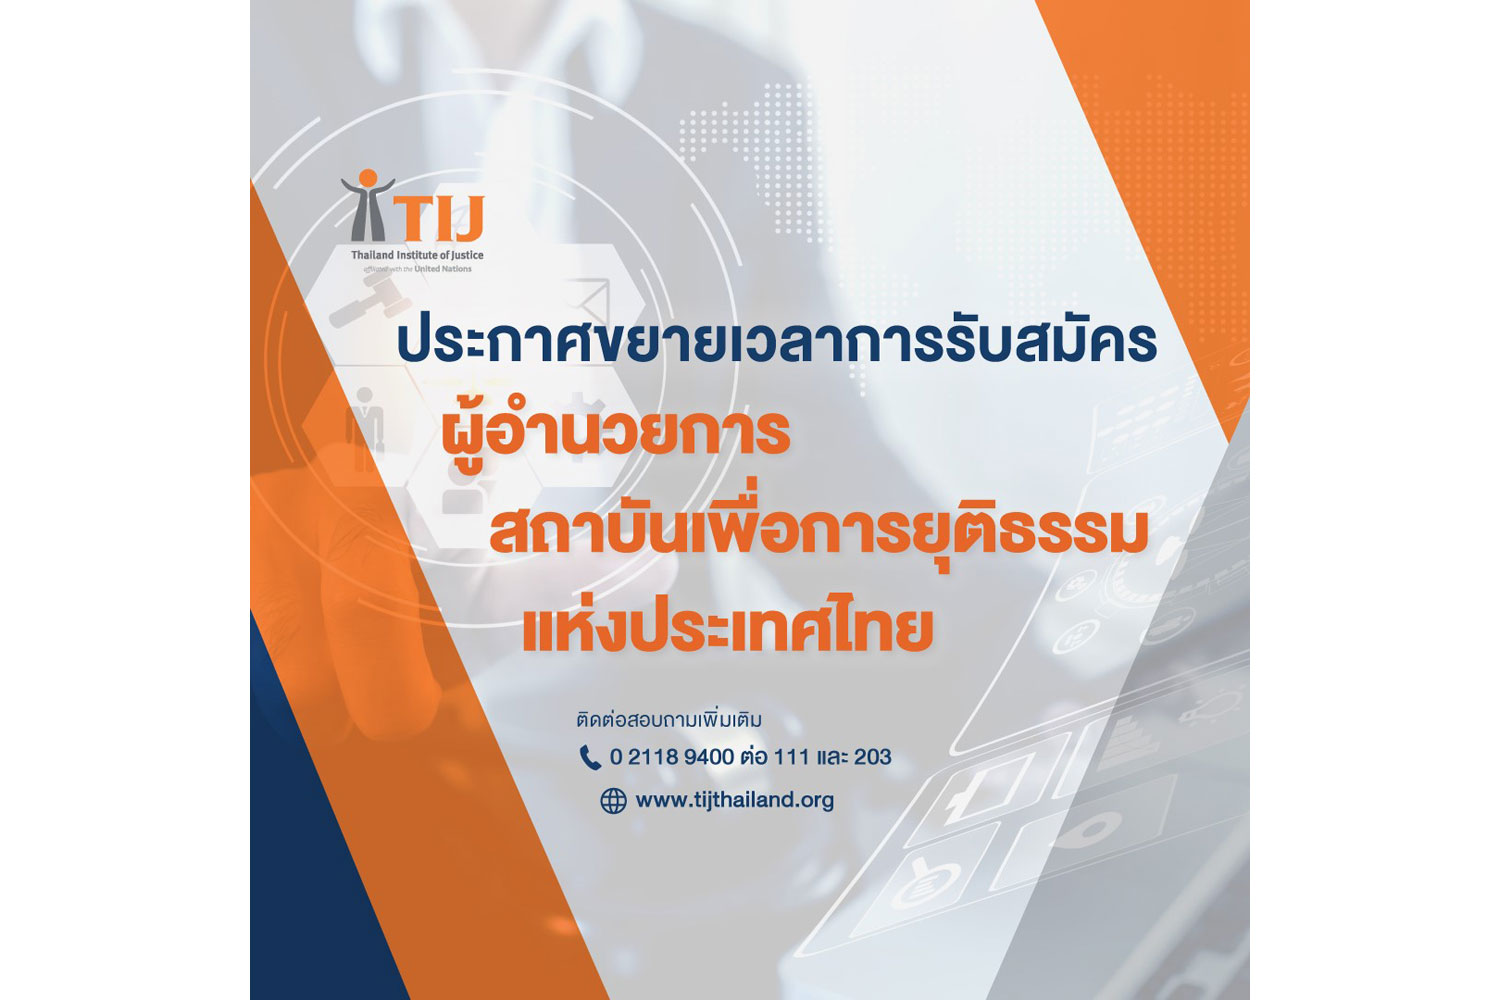 Top Thailand Organisation in Criminal Justice System and International Standards seeks a qualified professional to fill its top director position